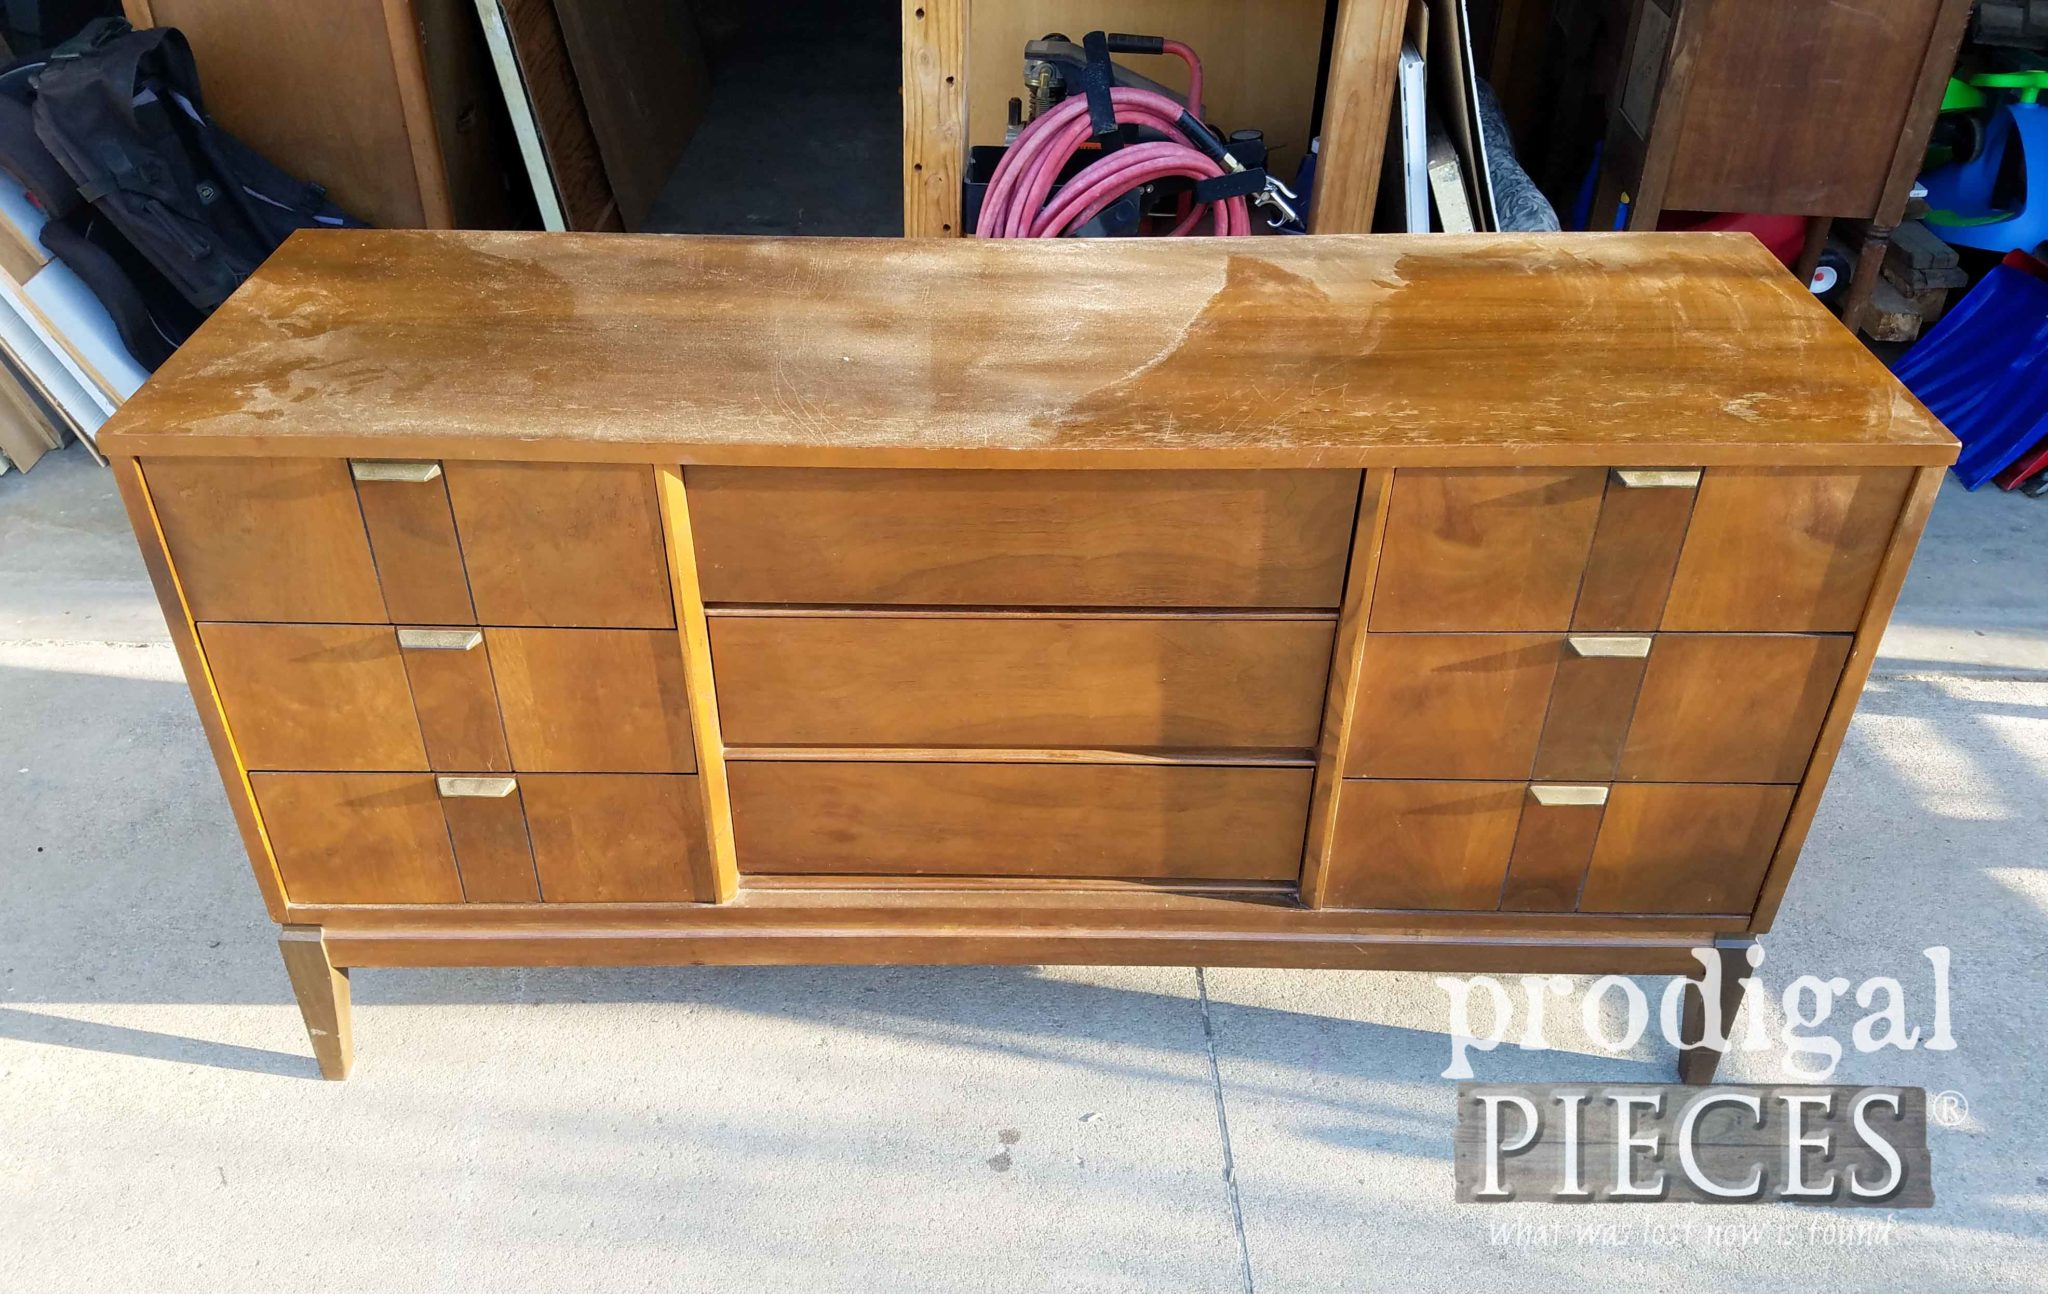 Vintage Stanley Mid Century Modern Dresser Before Makeover by Prodigal Pieces | prodigalpieces.com